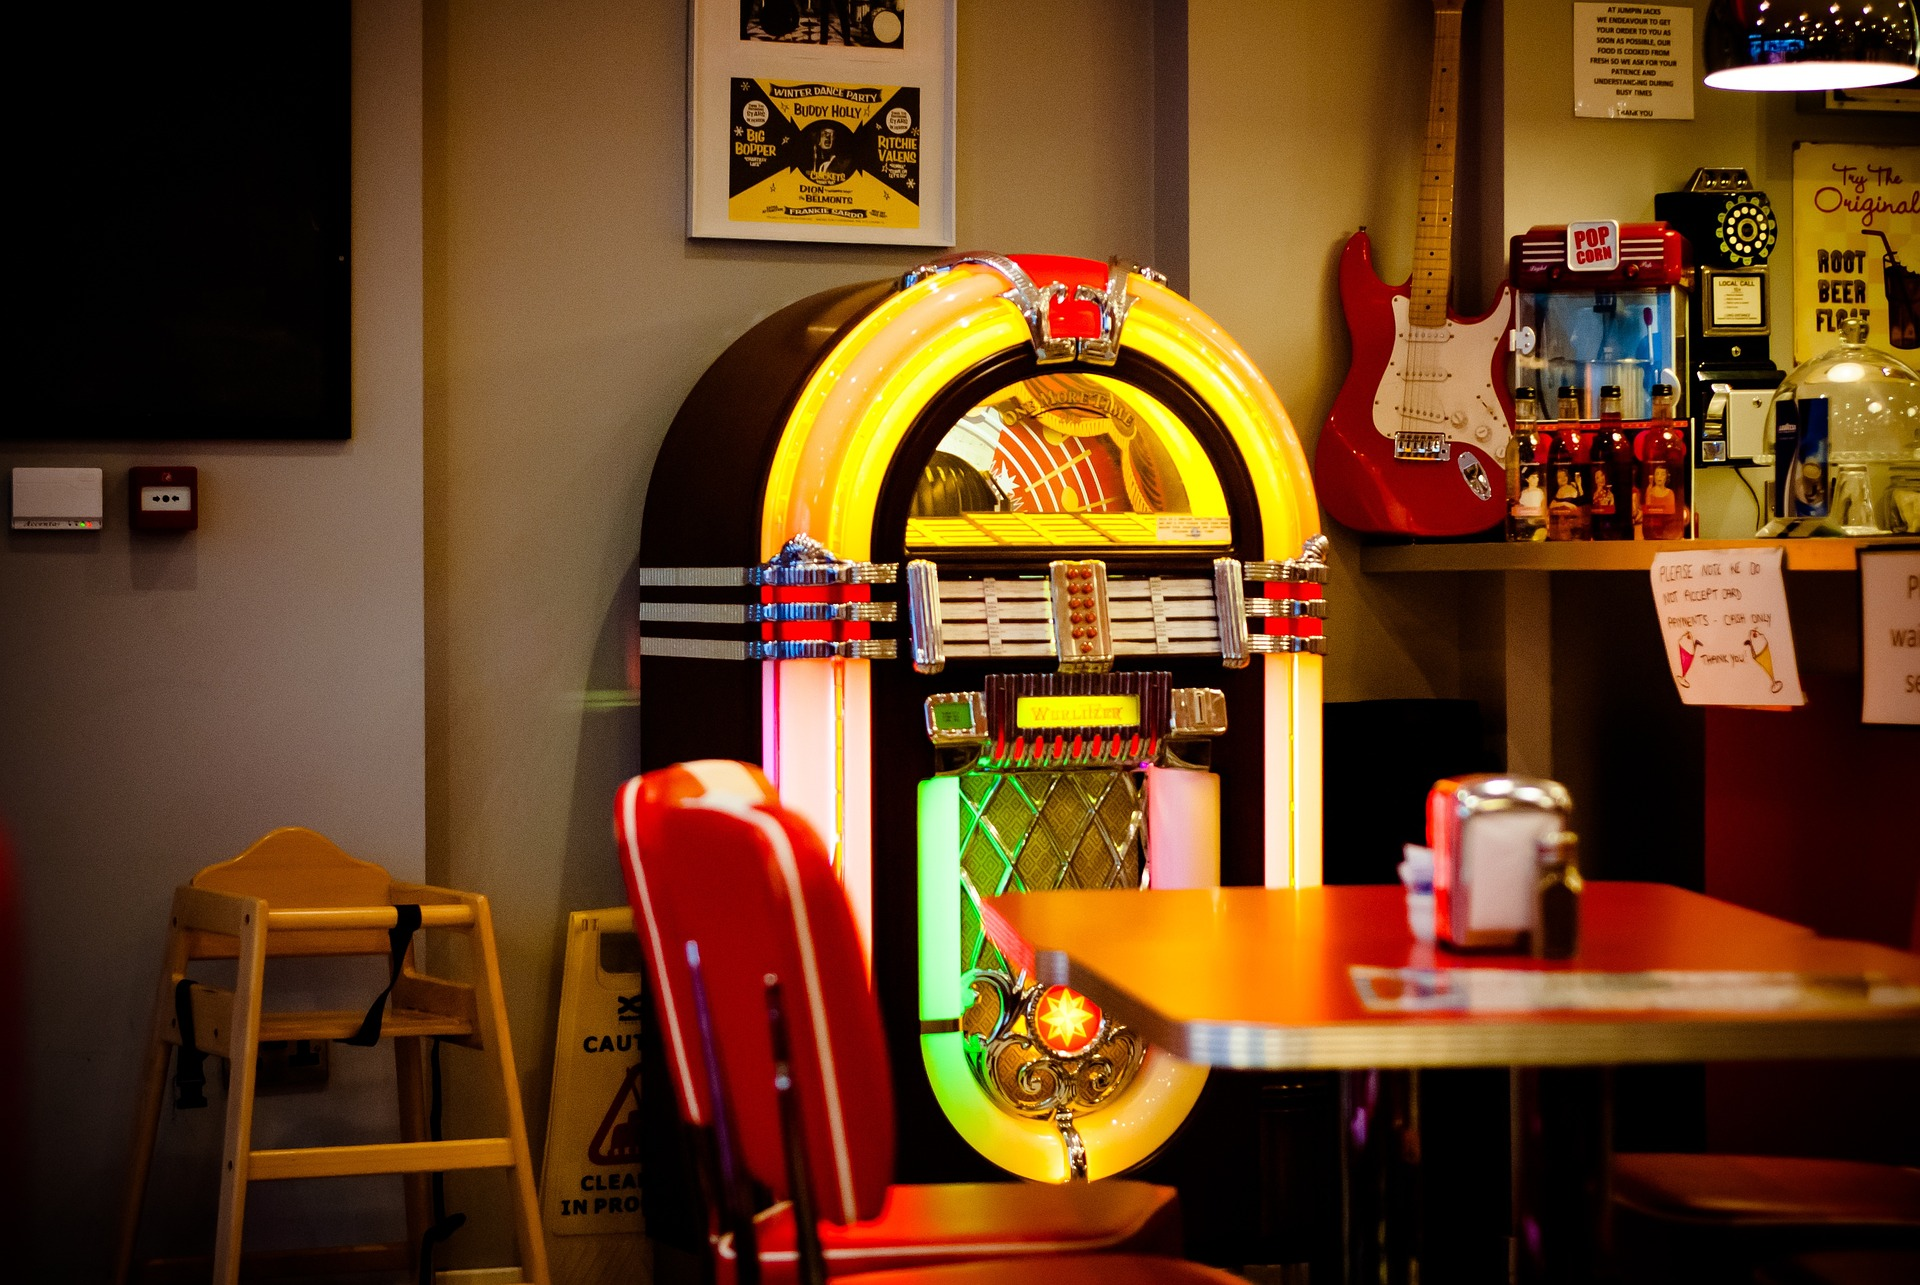 Jukebox im American Diner